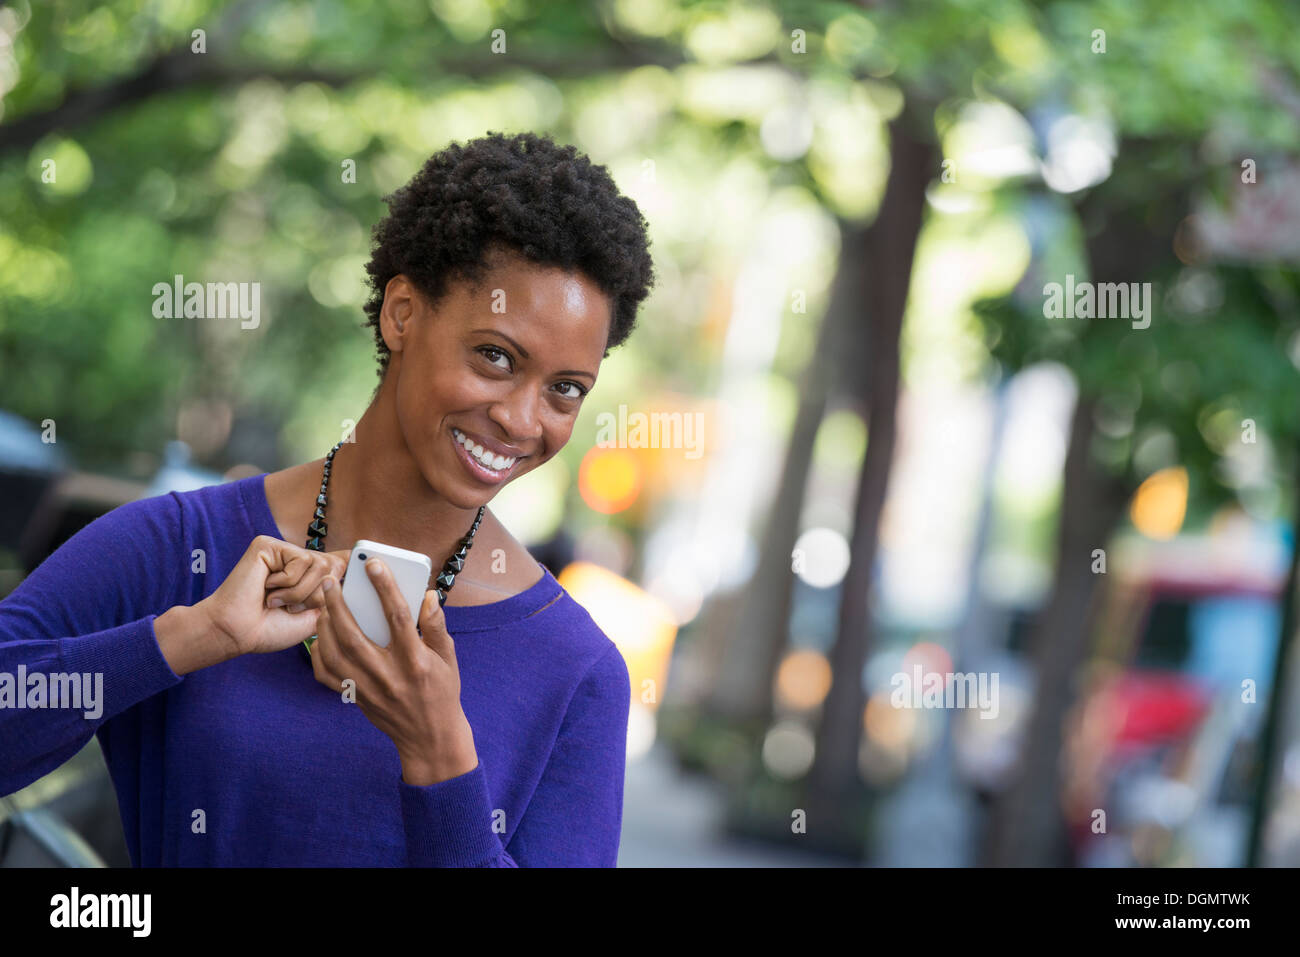 City. A woman in a purple dress checking her smart phone. - Stock Image